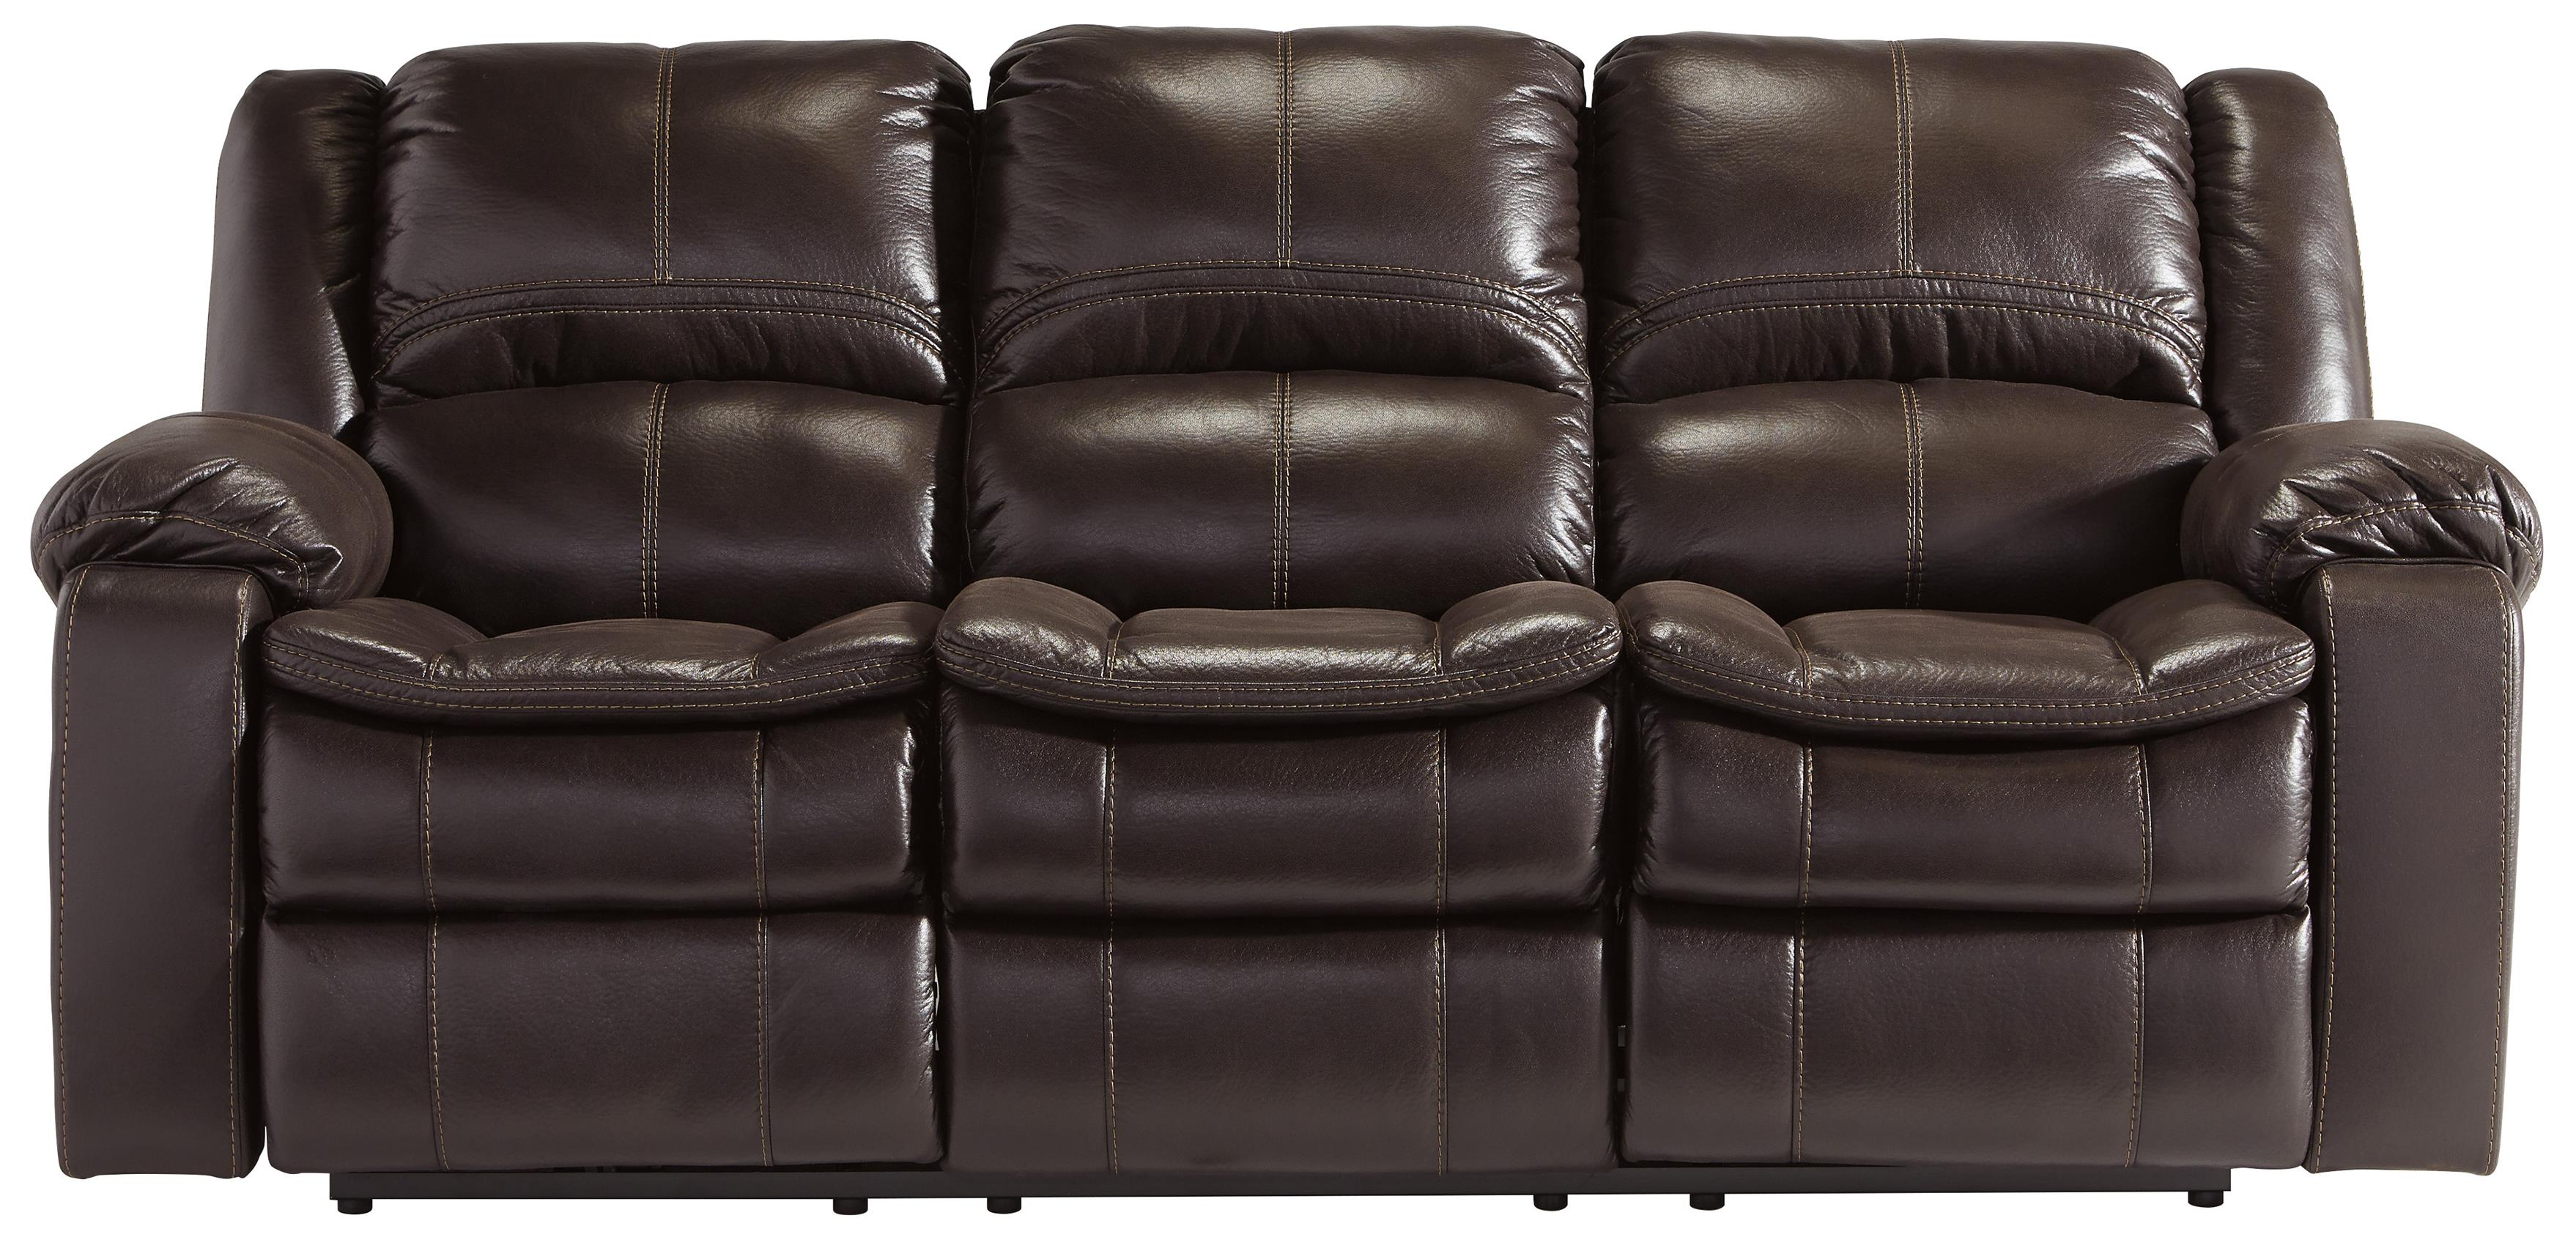 Signature Design by Ashley Long Knight Reclining Power Sofa - Item Number: 8890587